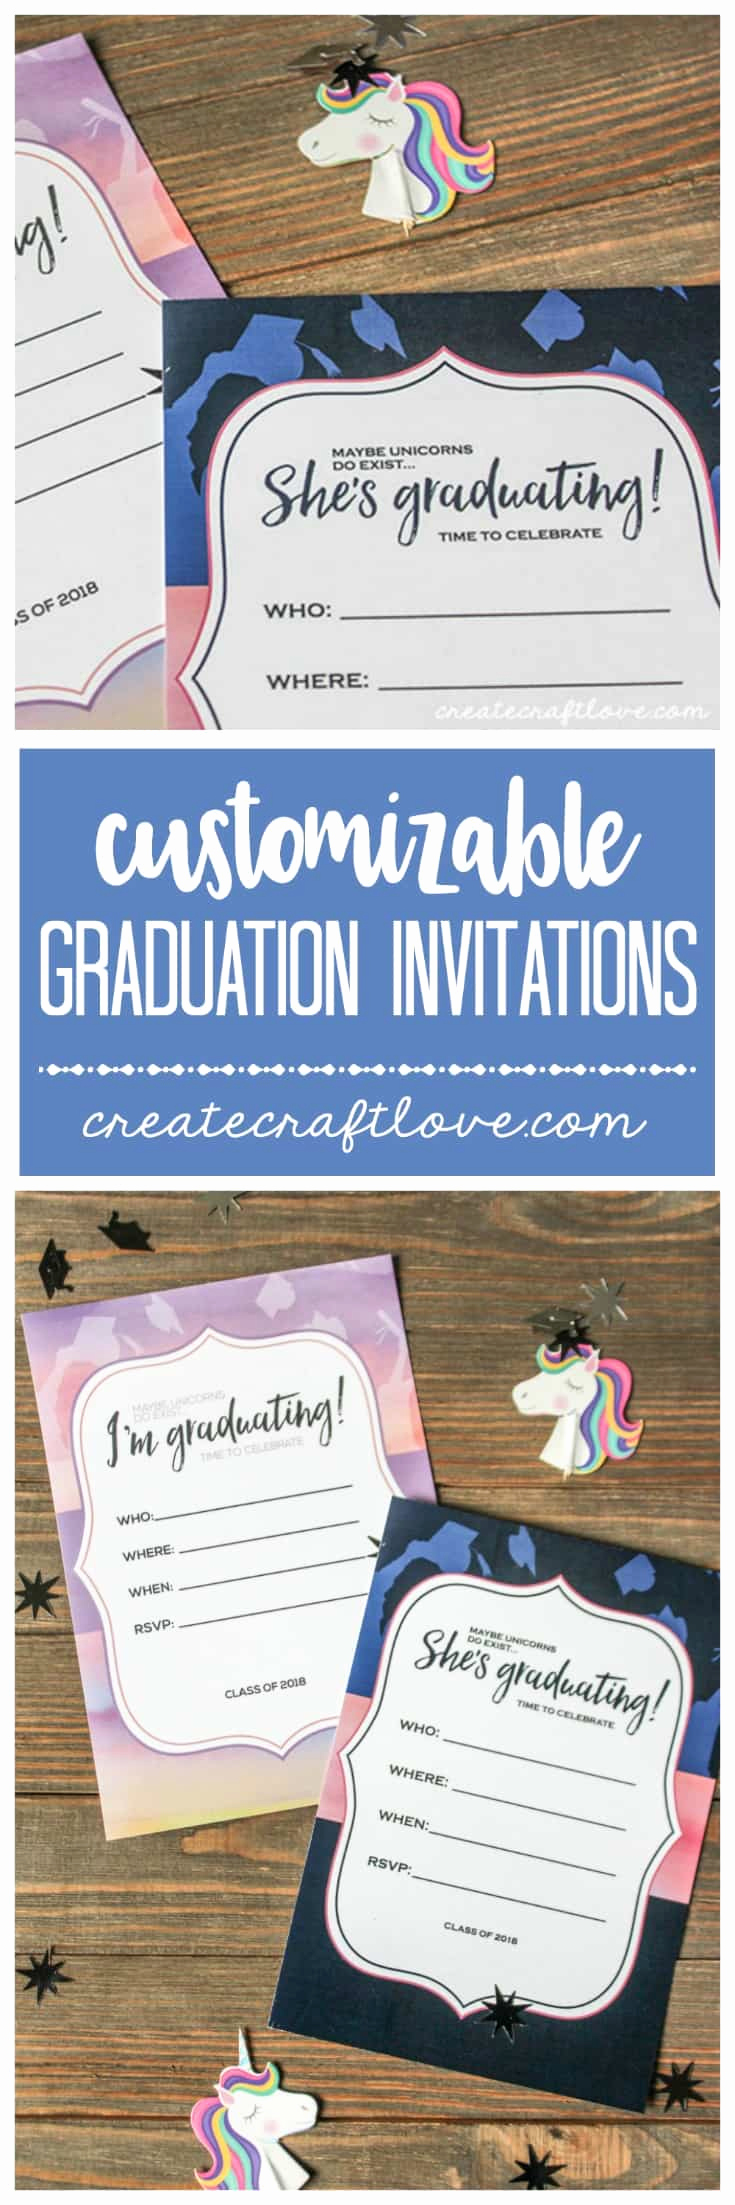 Make A Graduation Invitation Fresh Customizable Graduation Invitations Create Craft Love